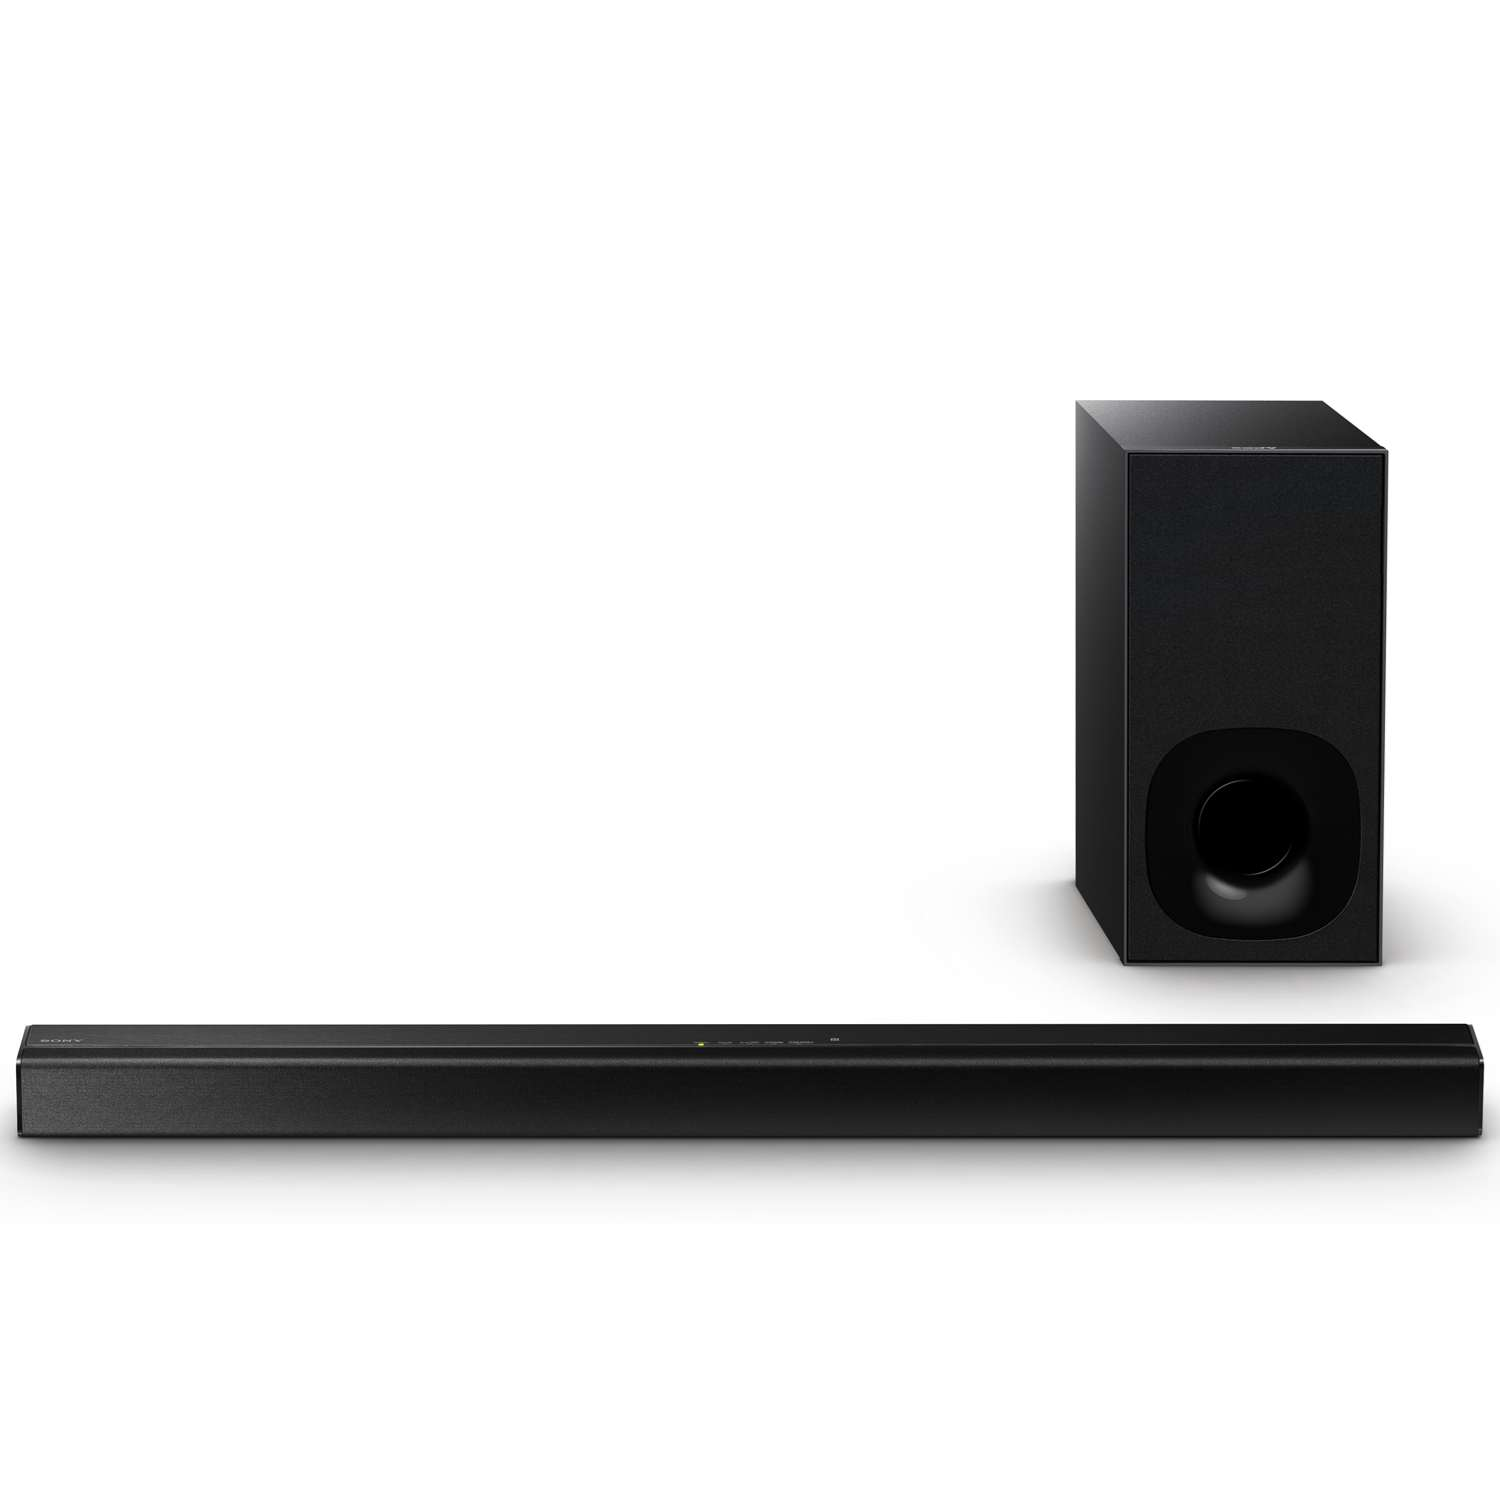 sony ht ct180 100w soundbar wireless subwoofer home cinema bluetooth black ebay. Black Bedroom Furniture Sets. Home Design Ideas